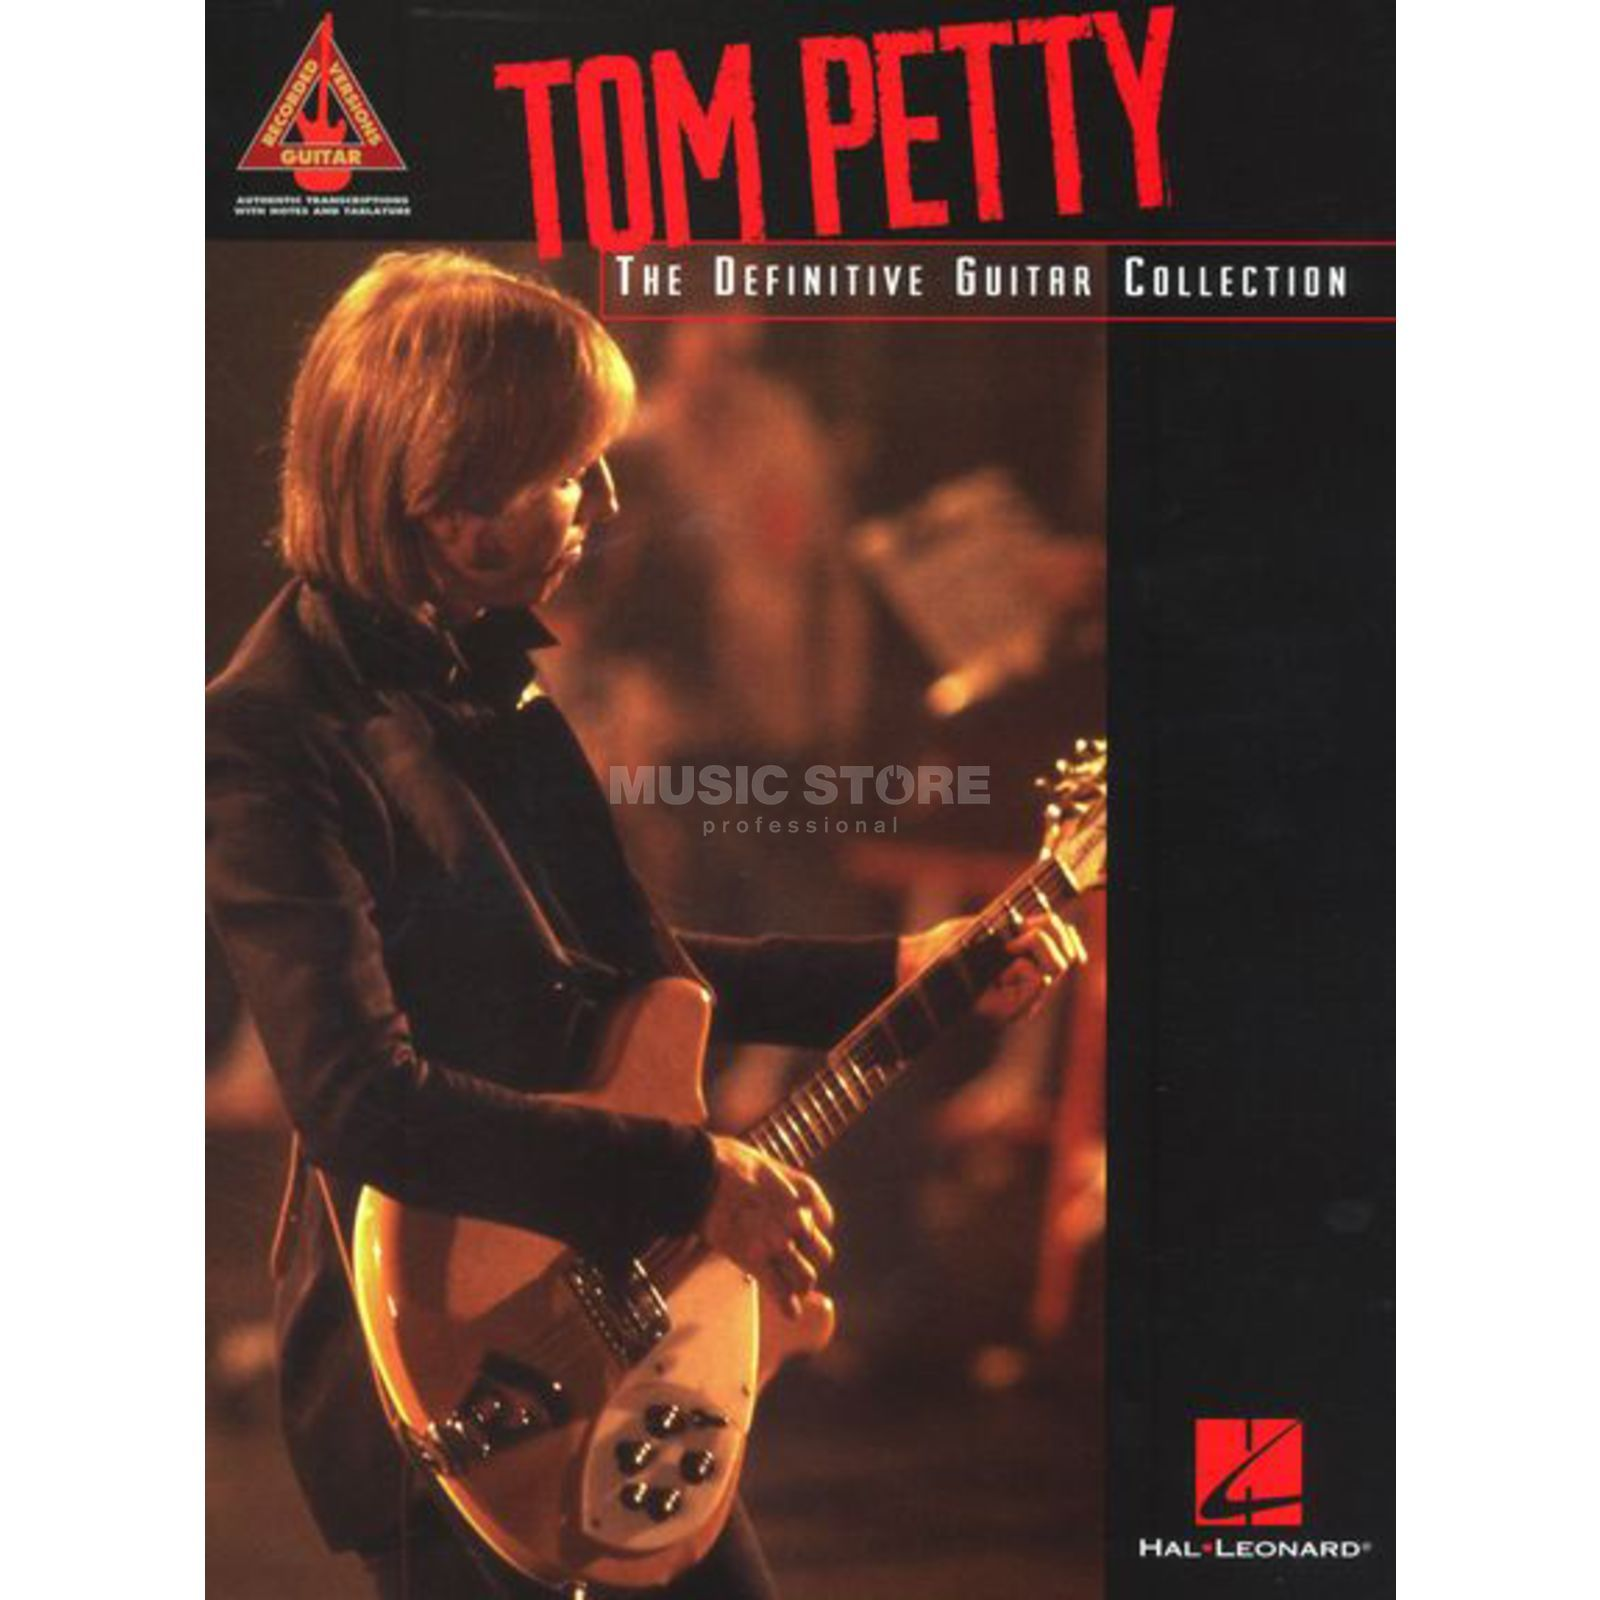 Hal Leonard Tom Petty: The Definitive Guitar Collection Produktbild